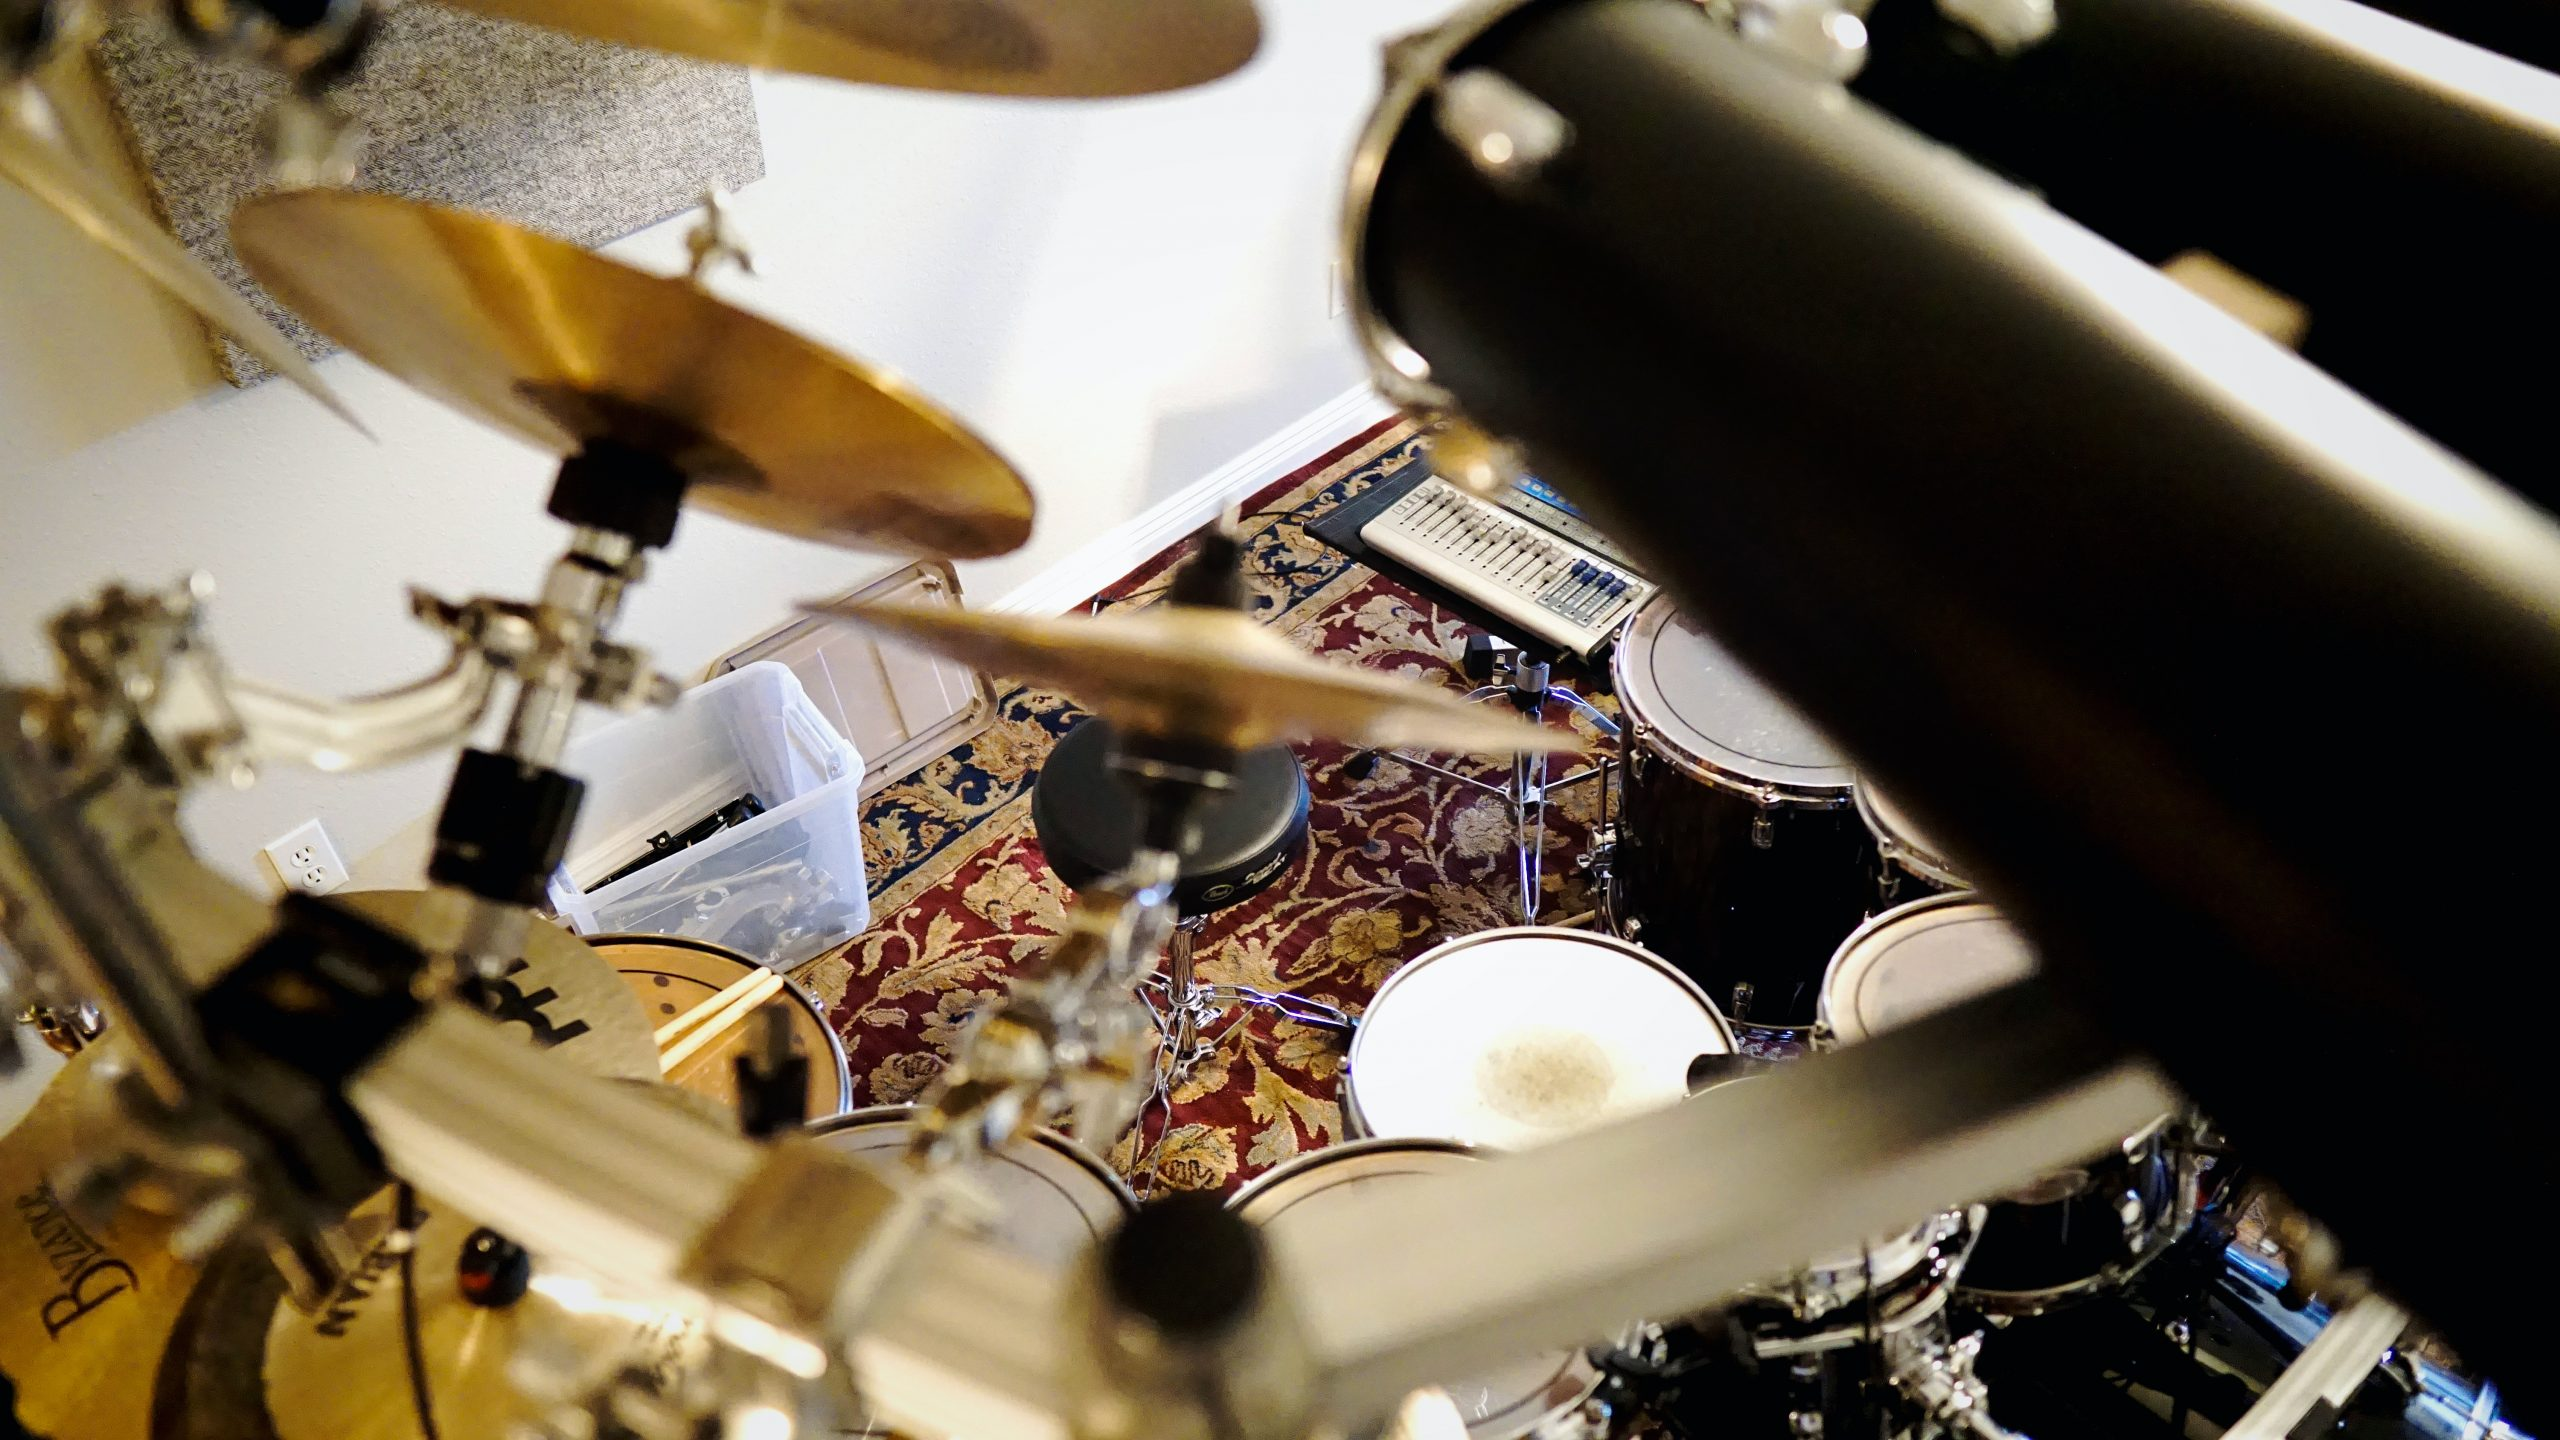 Cymbals out of focus on large drums set.